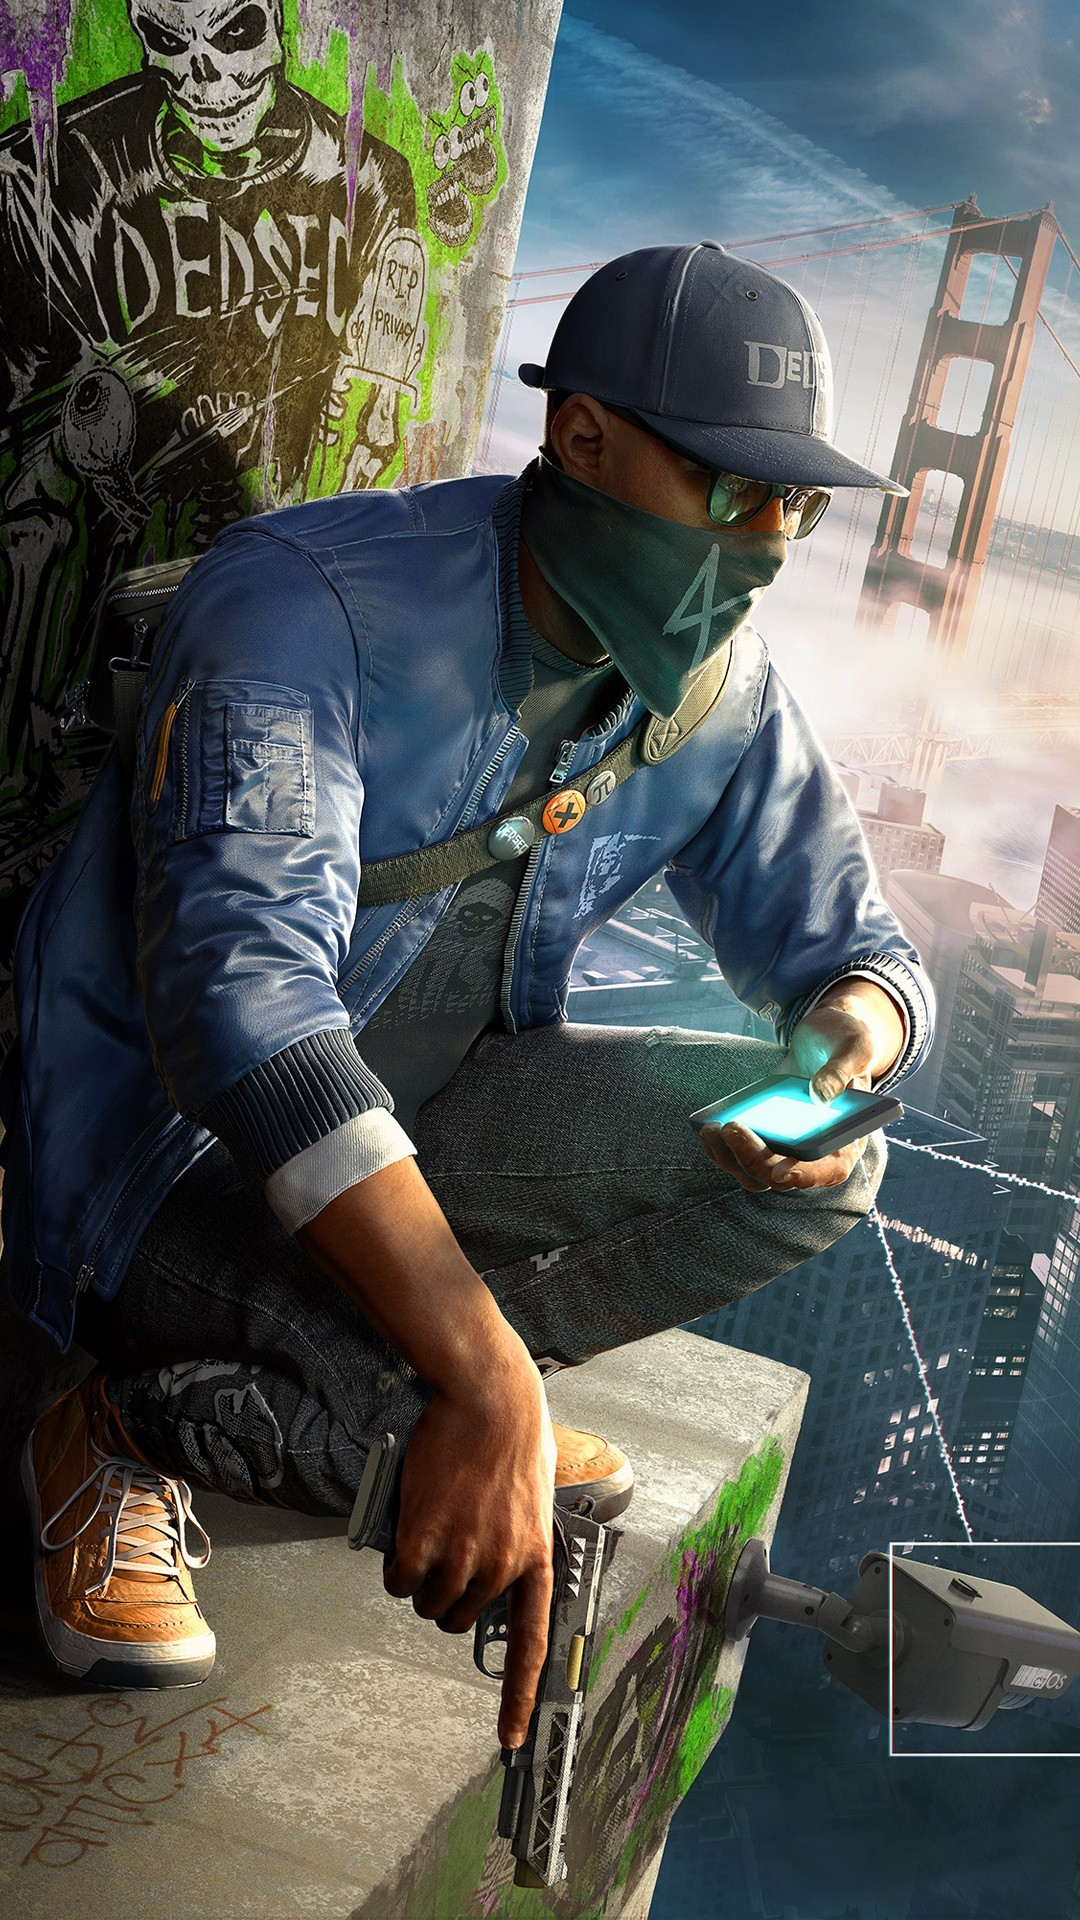 Related Post Watch Dogs 2 Android 1175255 Hd Wallpaper